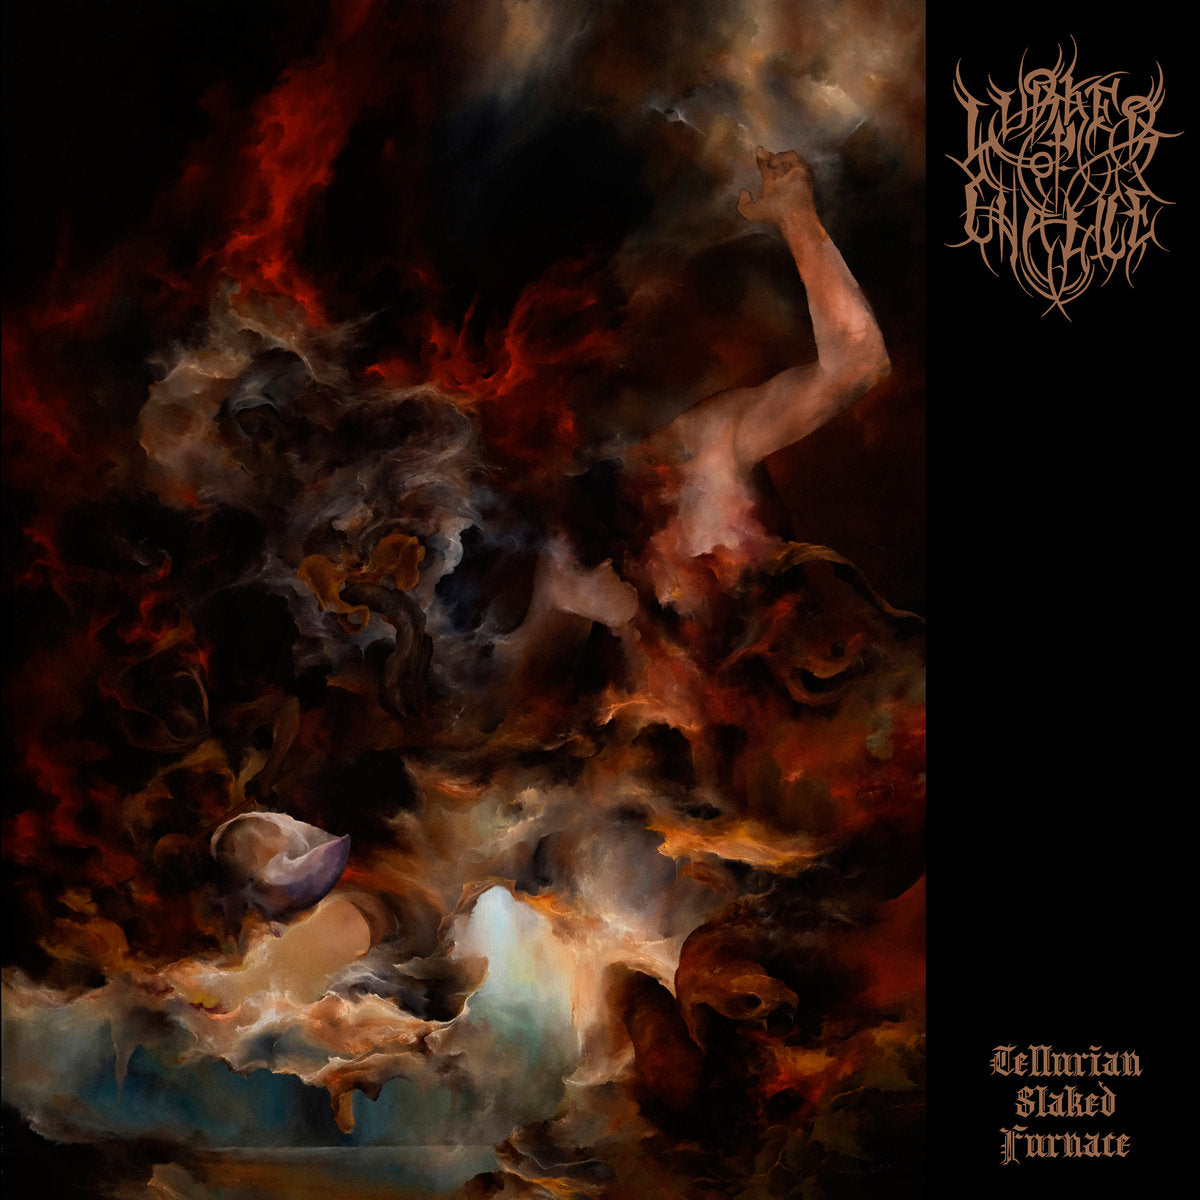 Lurker of Chalice - Tellurian Slaked Furnace CD